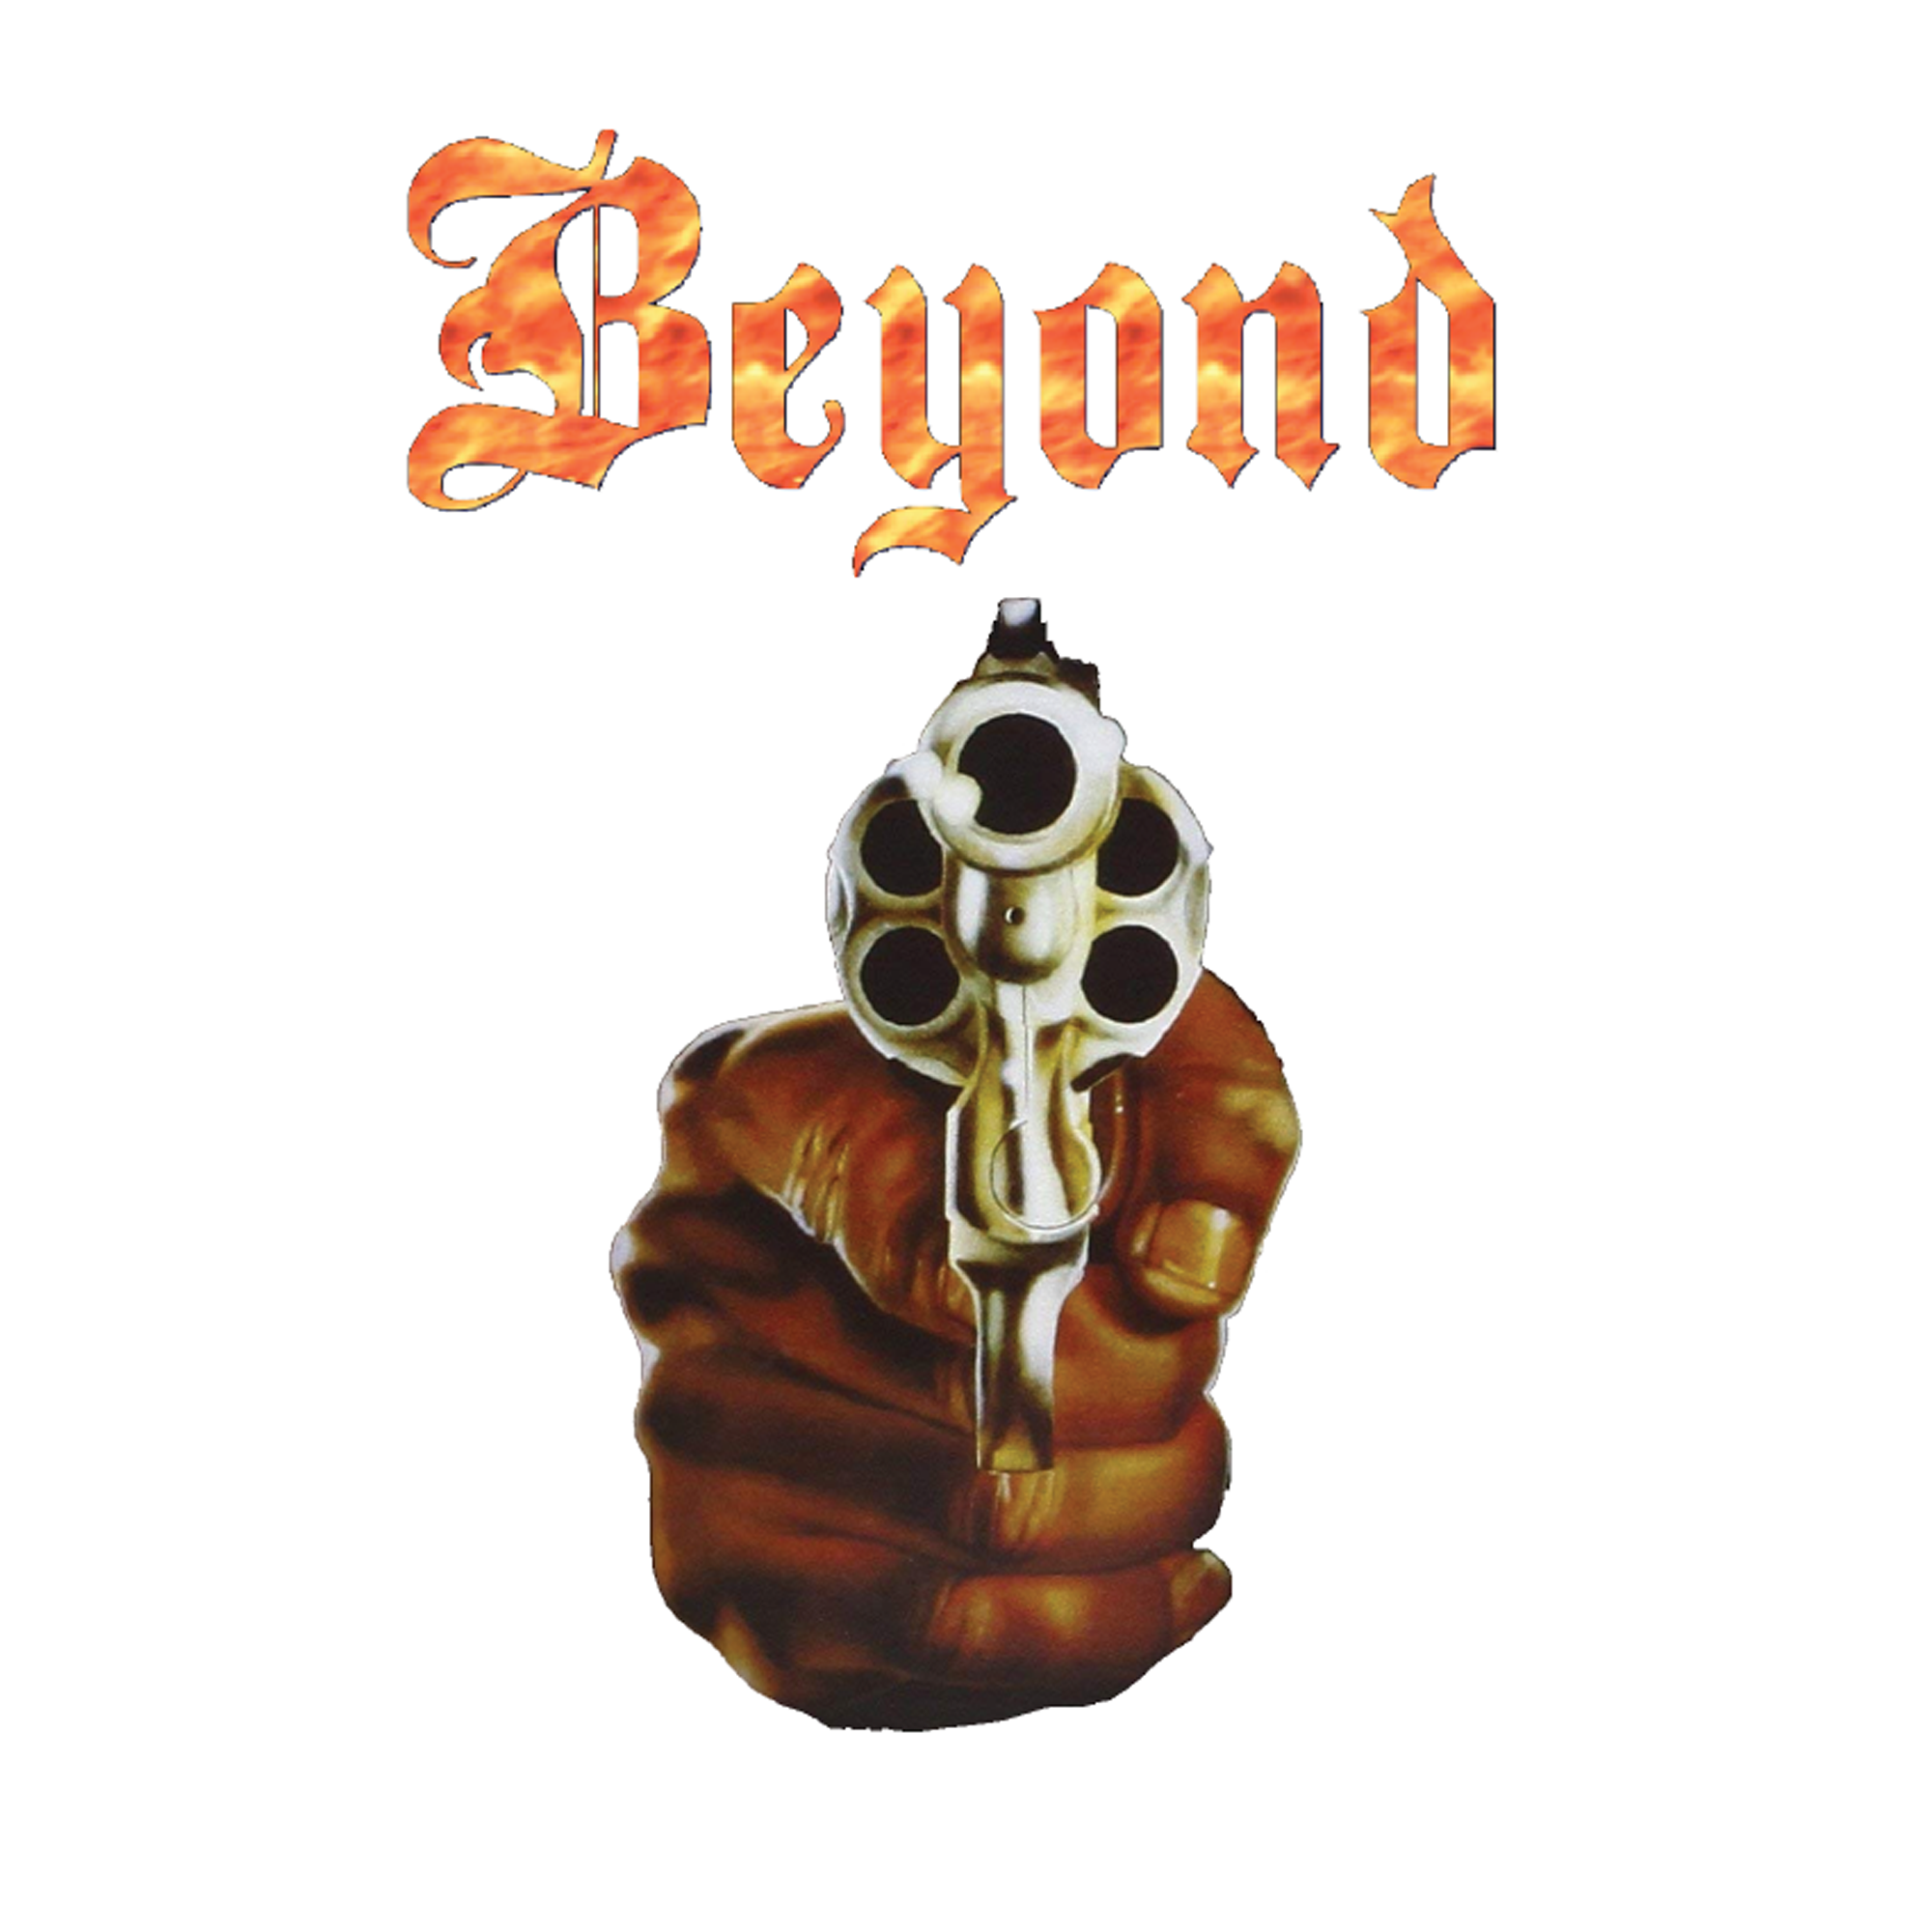 Beyond Count Sticker Product Photo #1